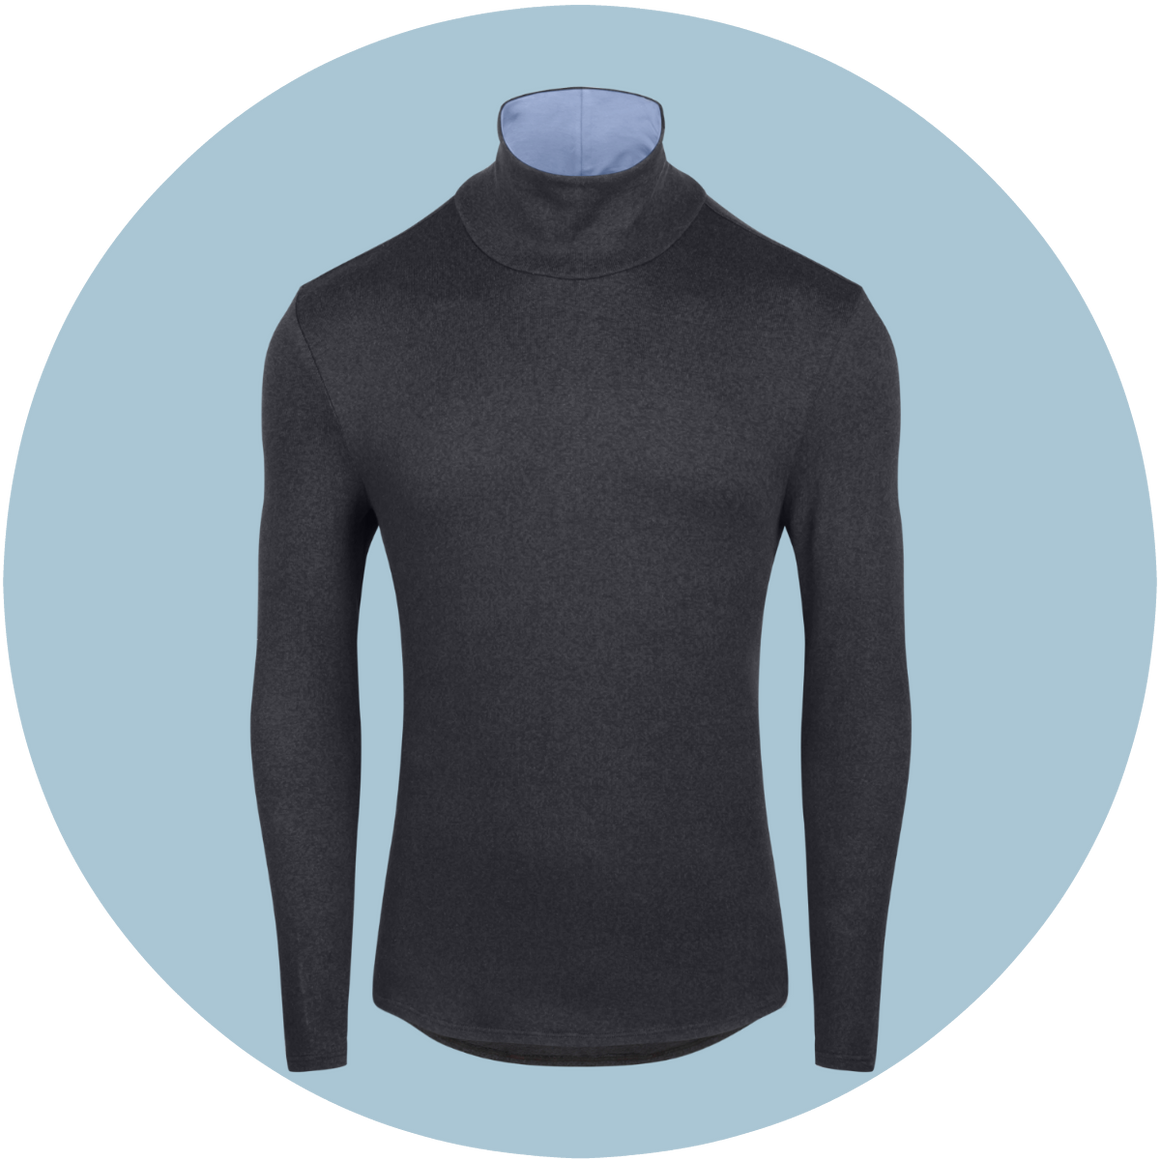 Black/Blue TRDLNYK Men's turtleneck for guys. Sleek and comfortable.